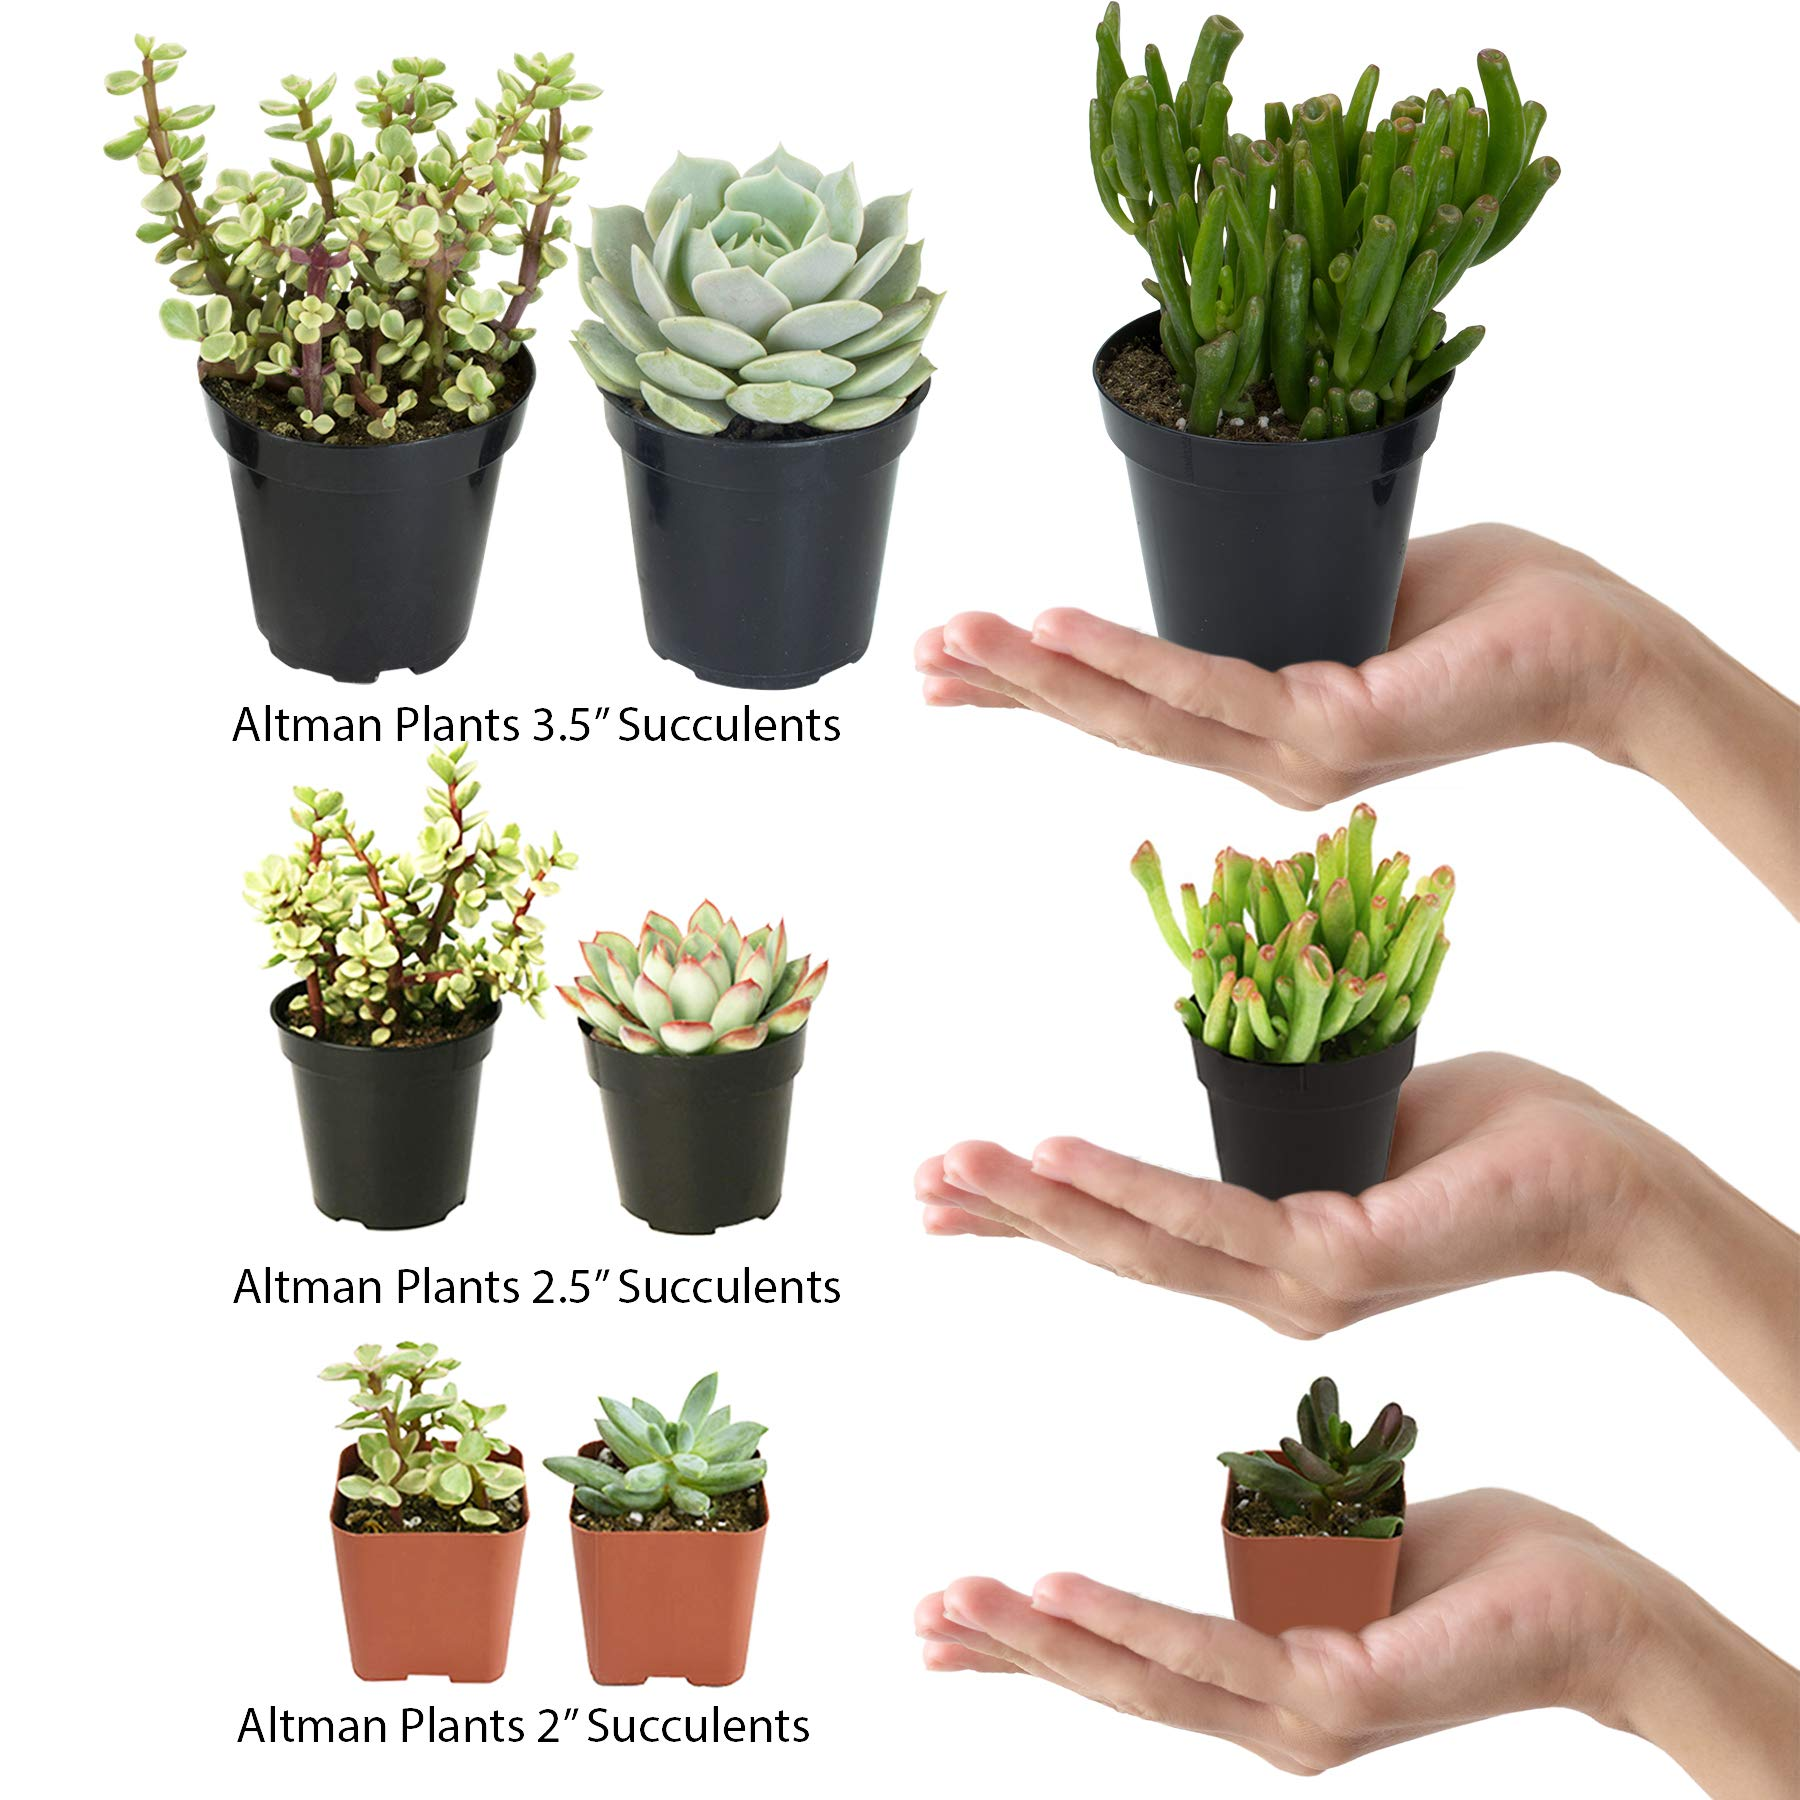 Altman Plants Assorted Live Succulents Desk Buddy Collection Easy care plants for Indoor, Office, Kitchen, 2.5'', 12 Pack by Altman Plants (Image #2)